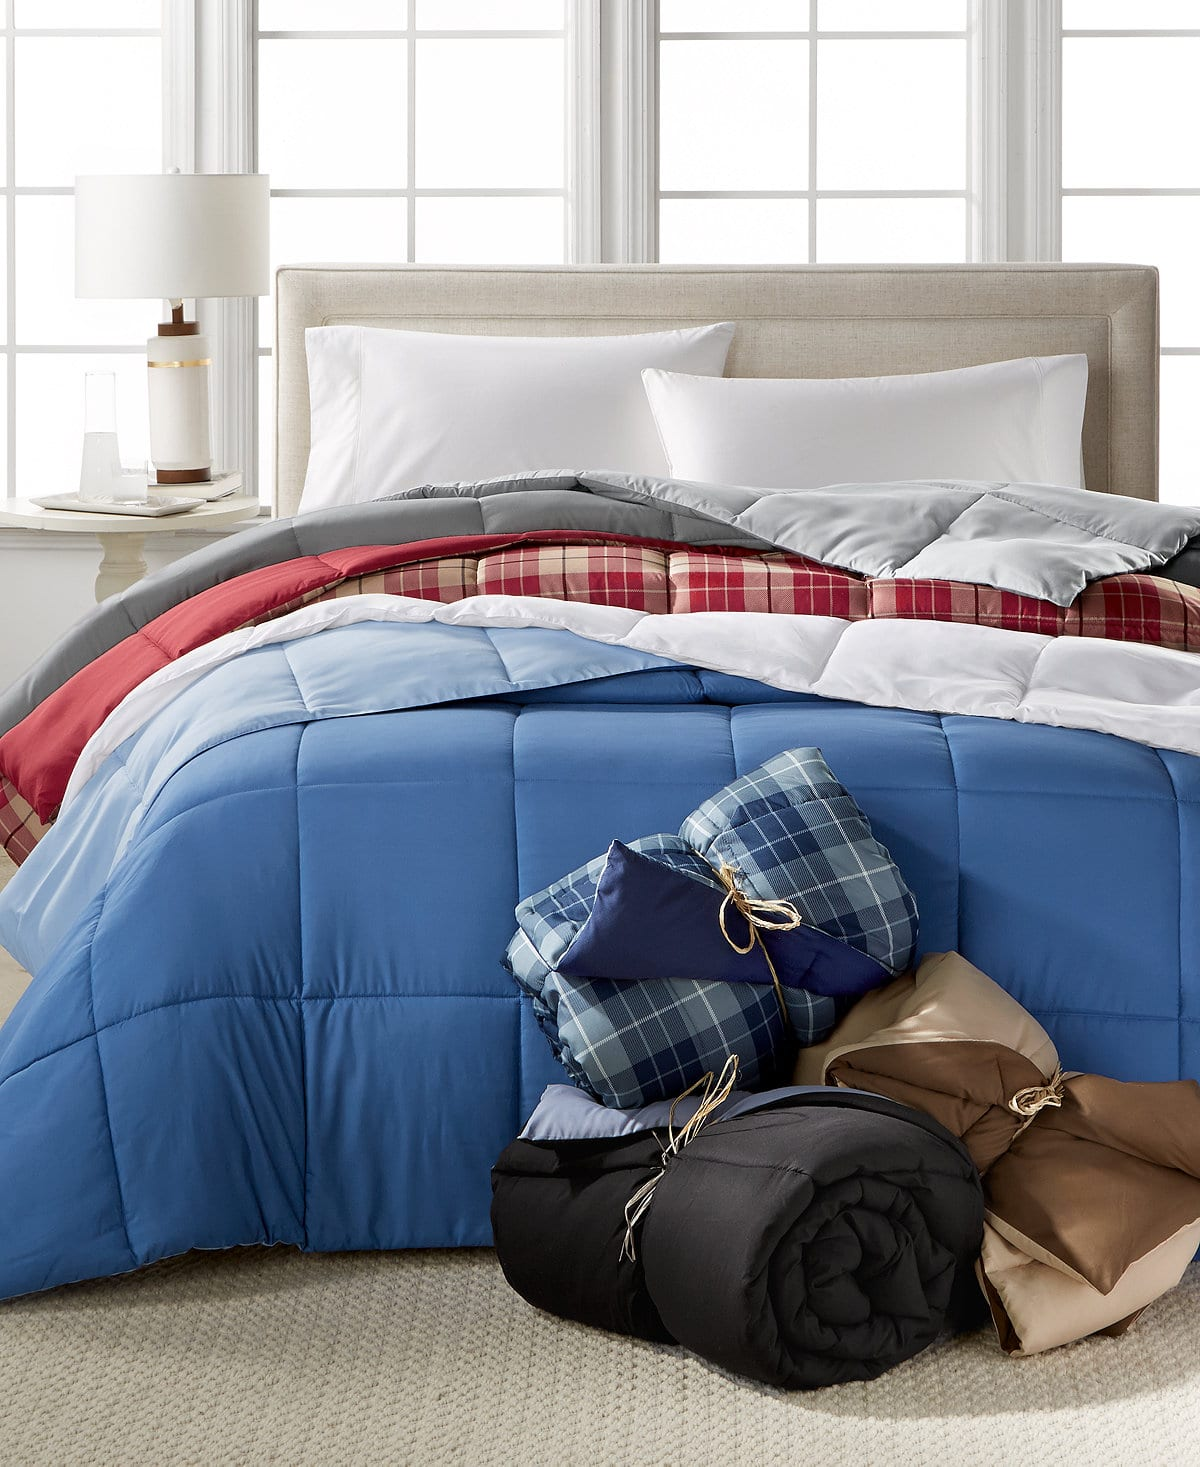 Home Design Down Alternative Hypoallergenic Comforter: Twin $21, Queen $23, King $25 + free store pickup at Macys